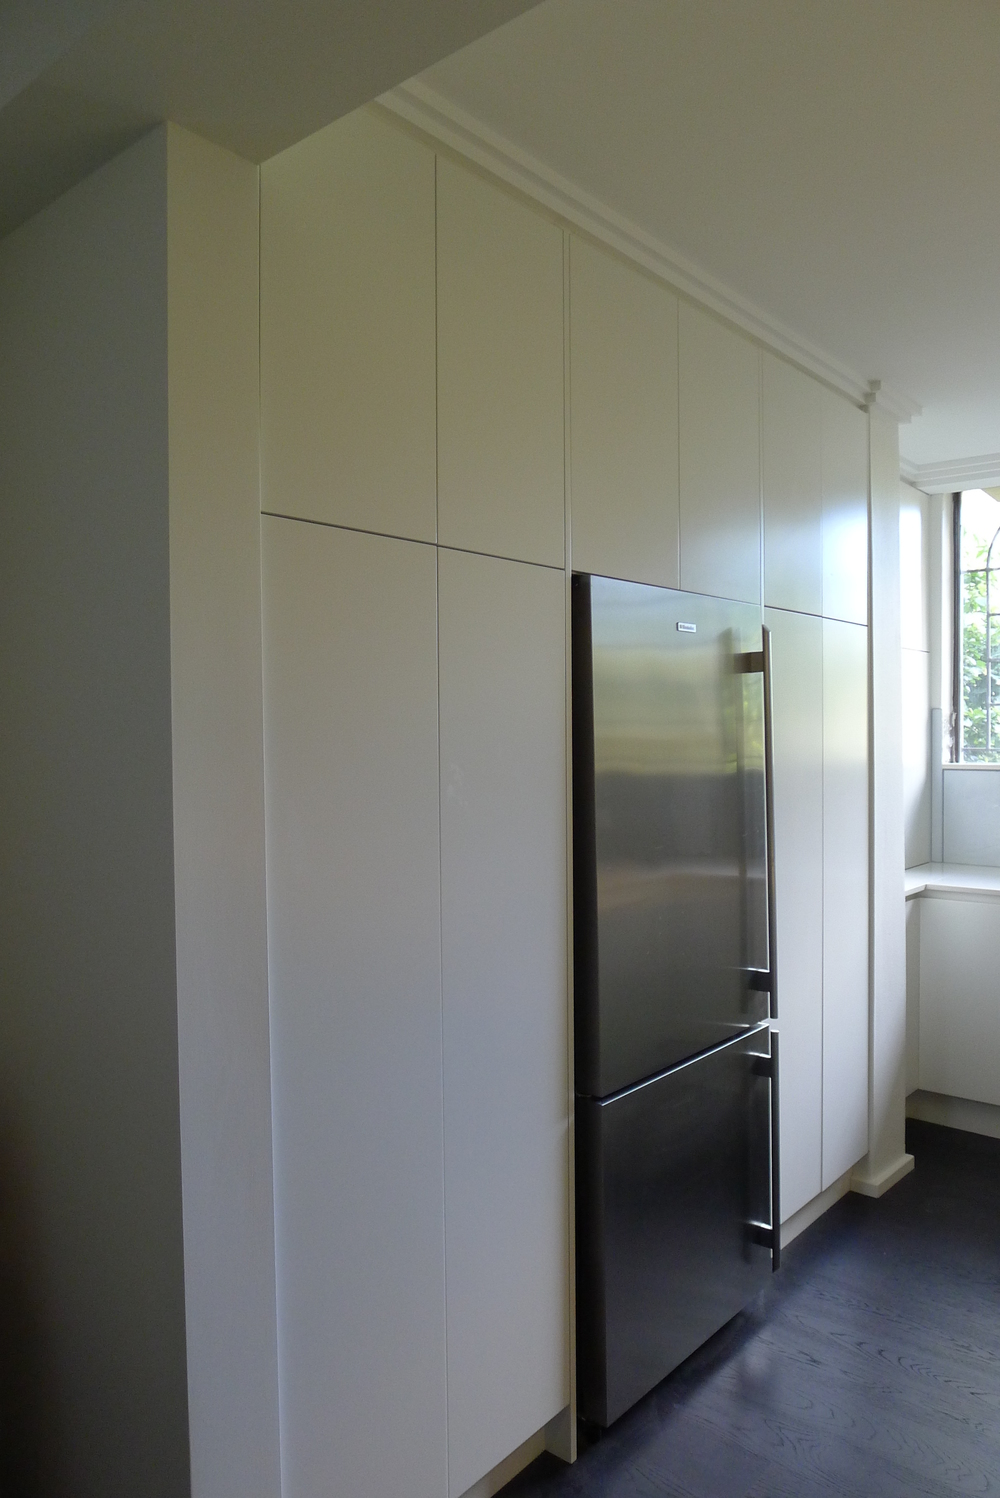 Kitchen Rushcutters Bay City Kitchens a4.JPG